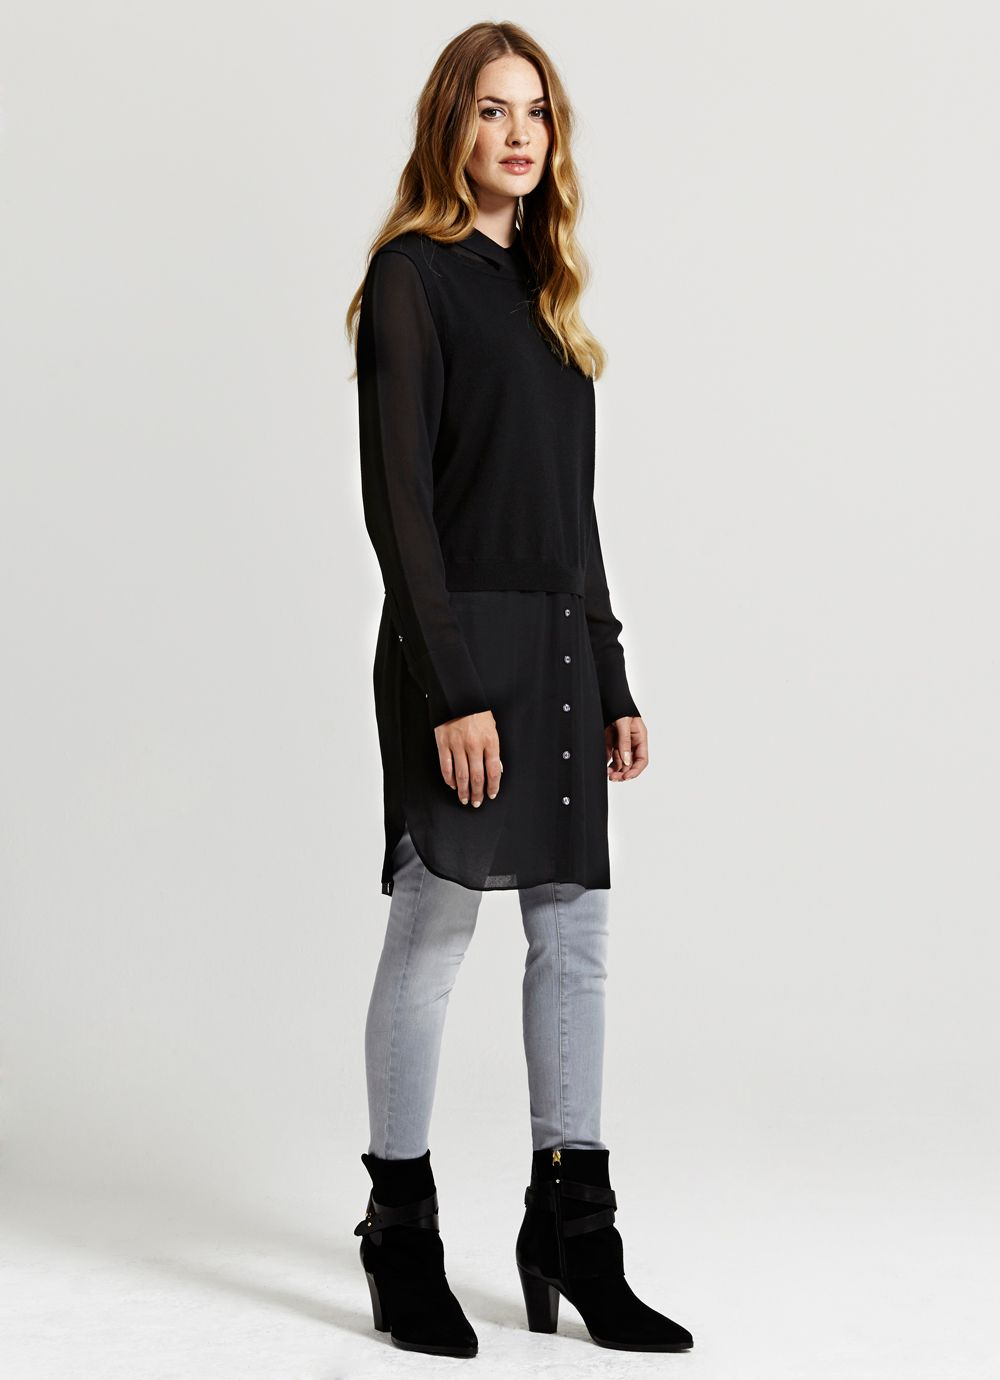 Black Sheer Shirt Knit